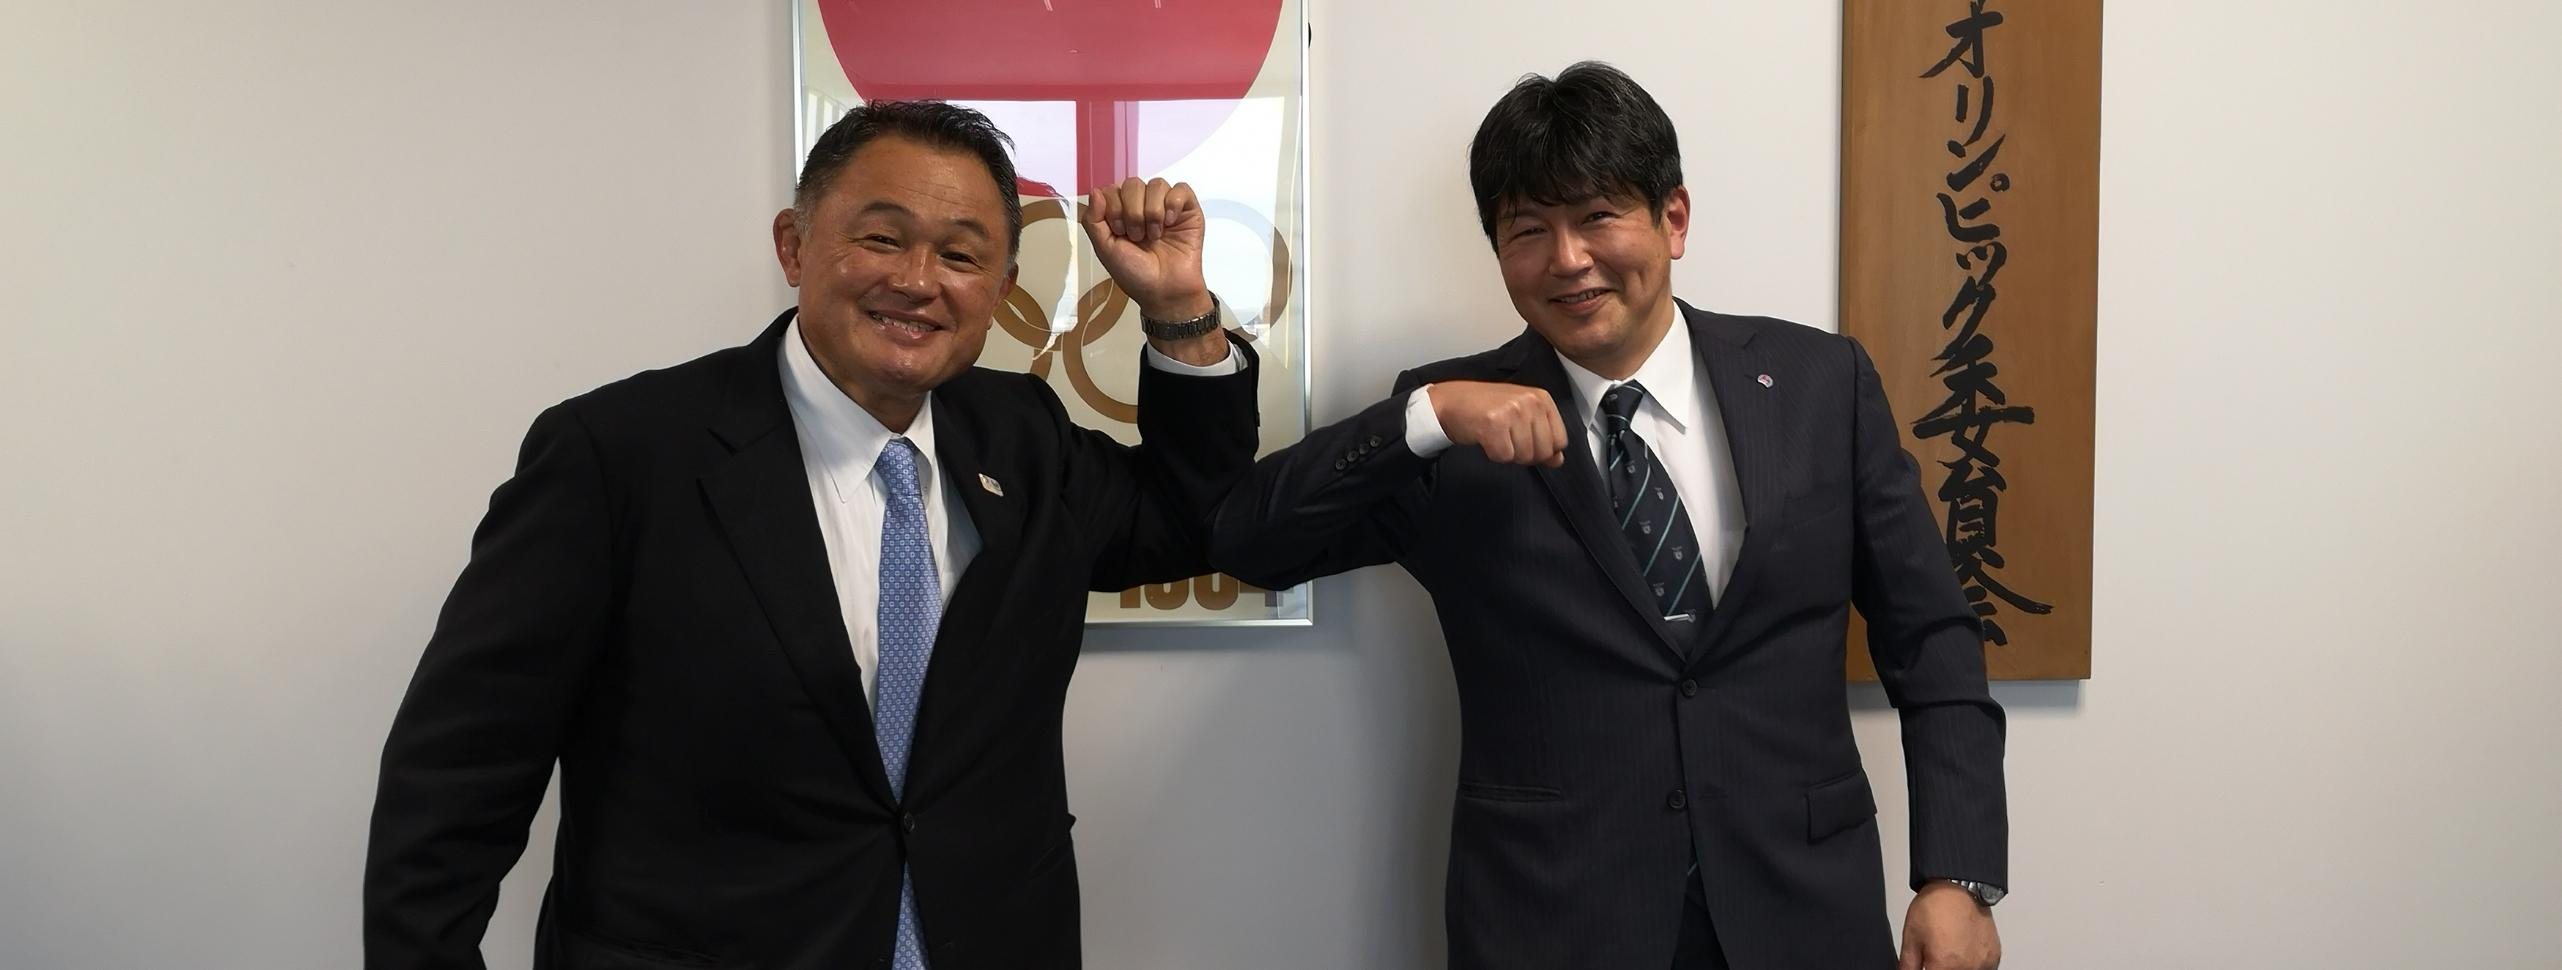 IFSC VICE PRESIDENT KOBINATA TORU MET WITH THE PRESIDENT OF THE JAPANESE OLYMPIC COMMITTEE